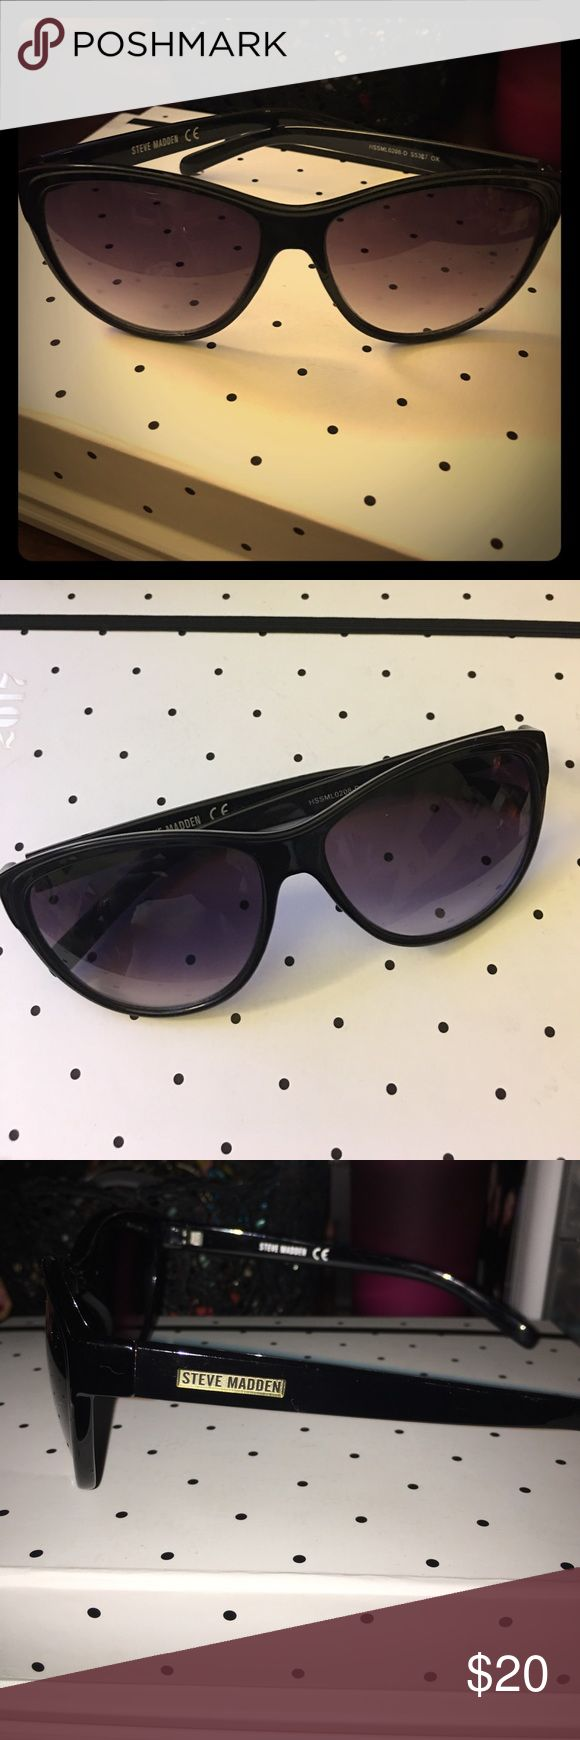 Steve Madden sunglasses Steve Madden sunglasses. Cateye style frame. Black frame with black gradient lenses. Slightly used with no scratches. Steve Madden logo on both arms of sunglasses. Comes with hard Steve Madden case. Steve Madden Accessories Sunglasses